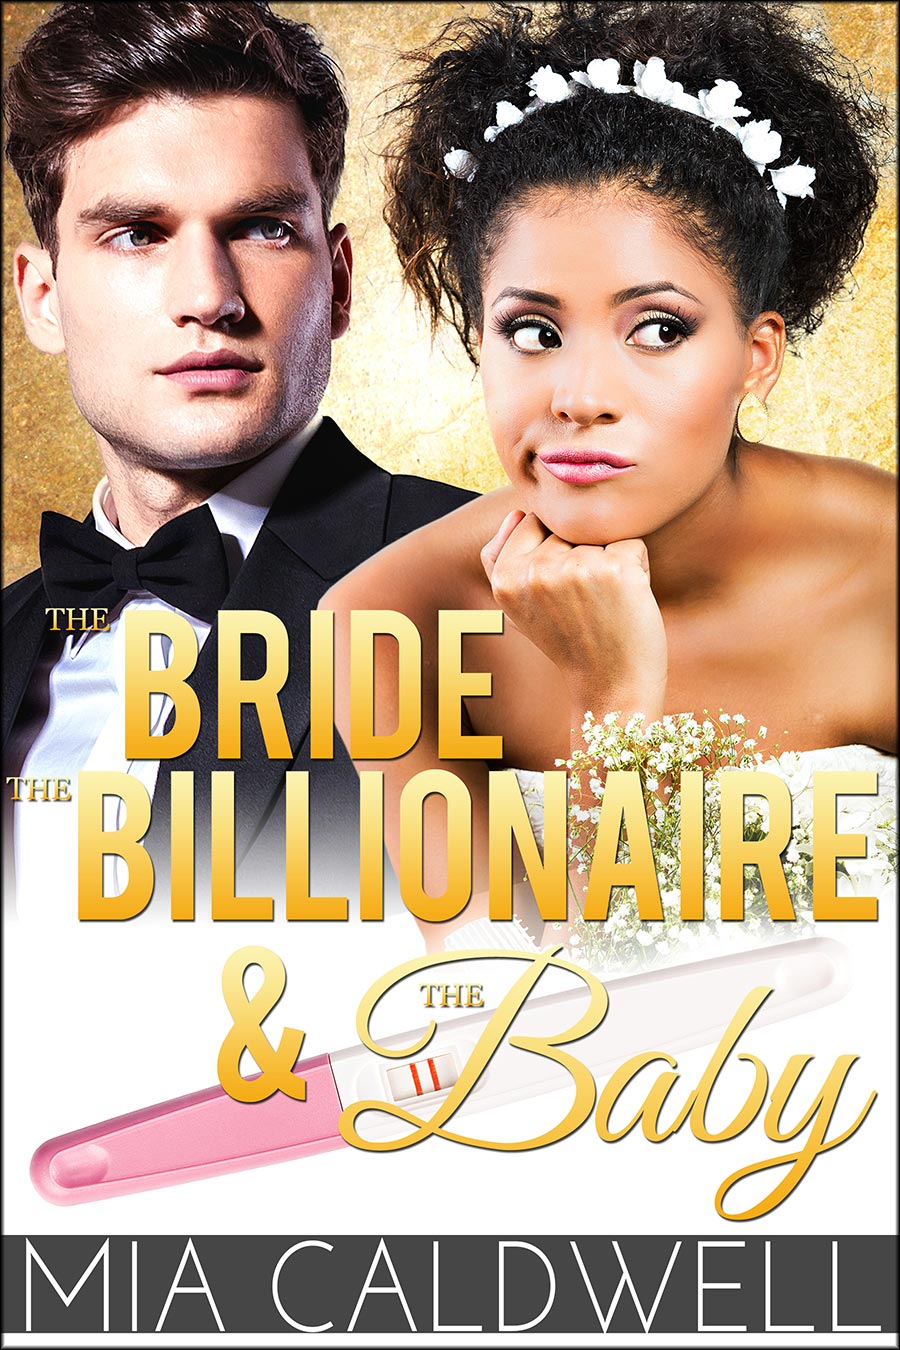 The-Bride-The-Billionaire-and-The-Baby---final.jpg